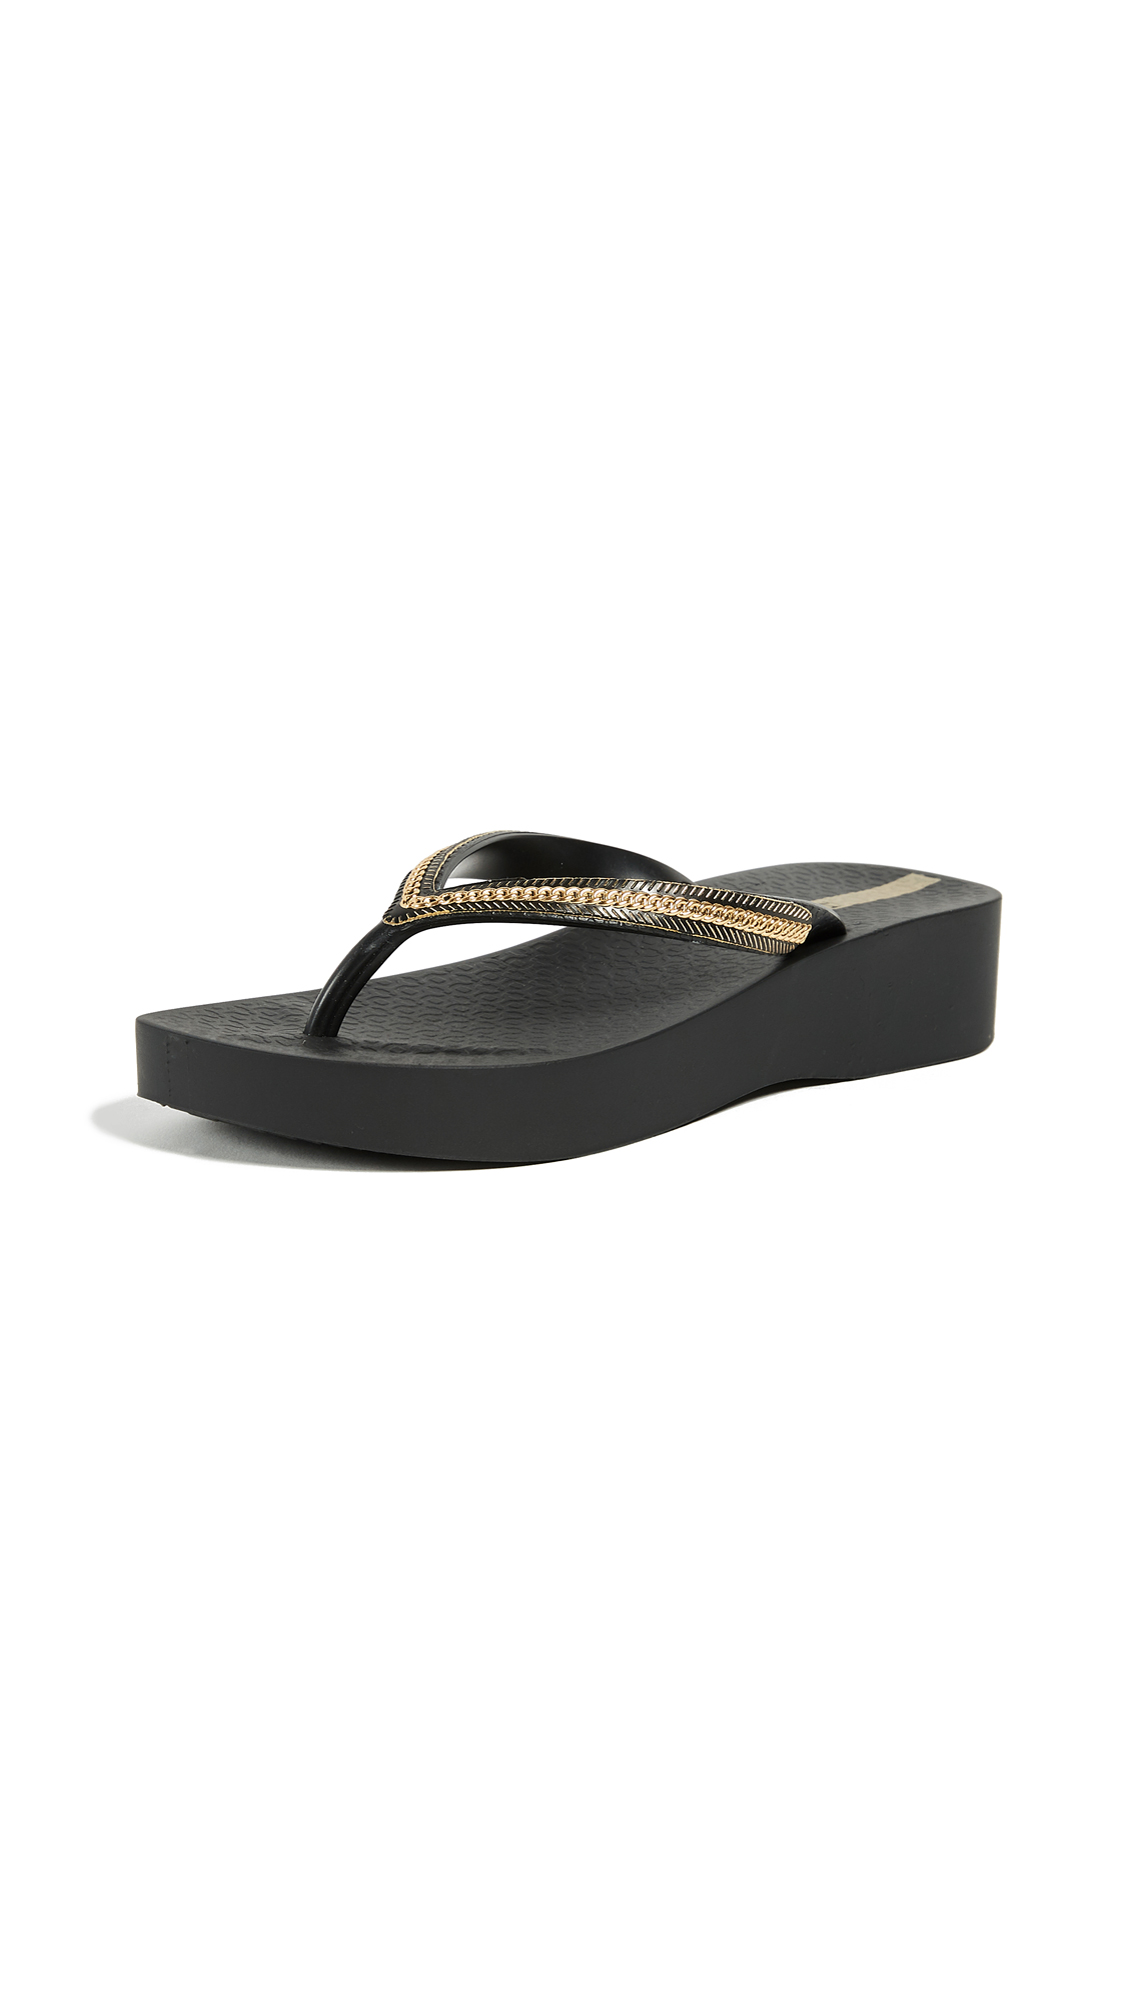 Ipanema Mesh Wedge Flip Flops - Black/Black